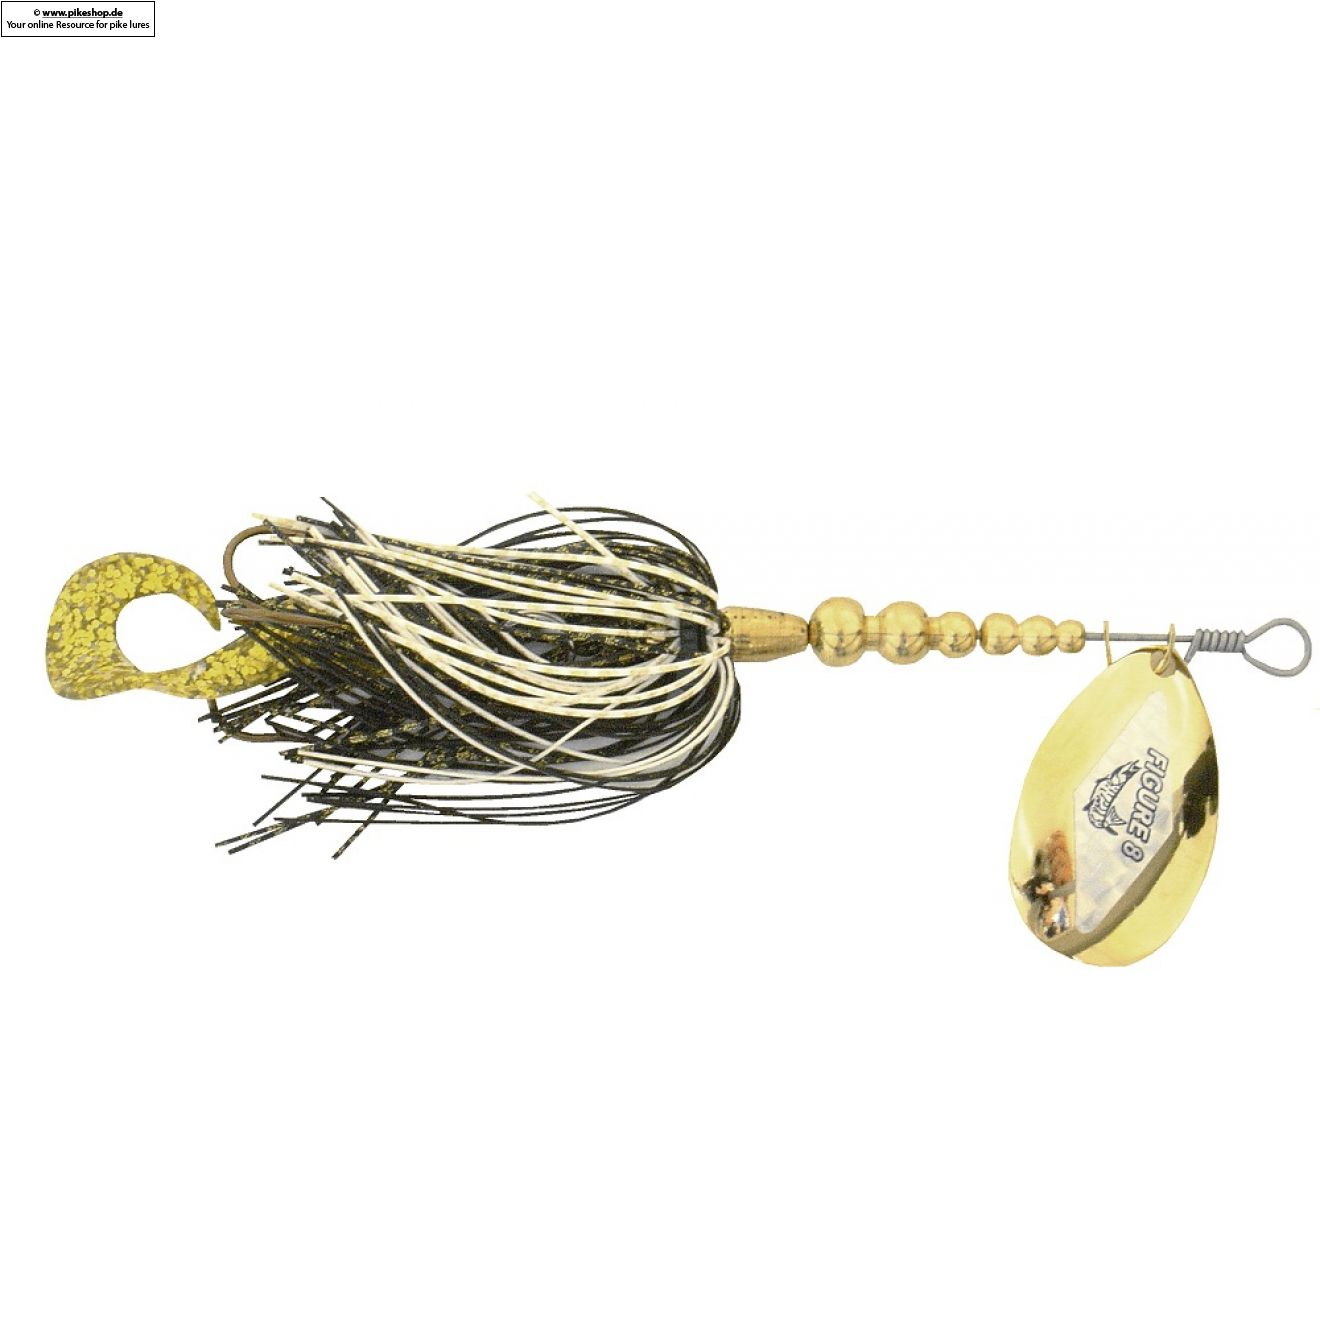 Stalker - 15cm (6 Zoll) - F8 Walleye / Gold